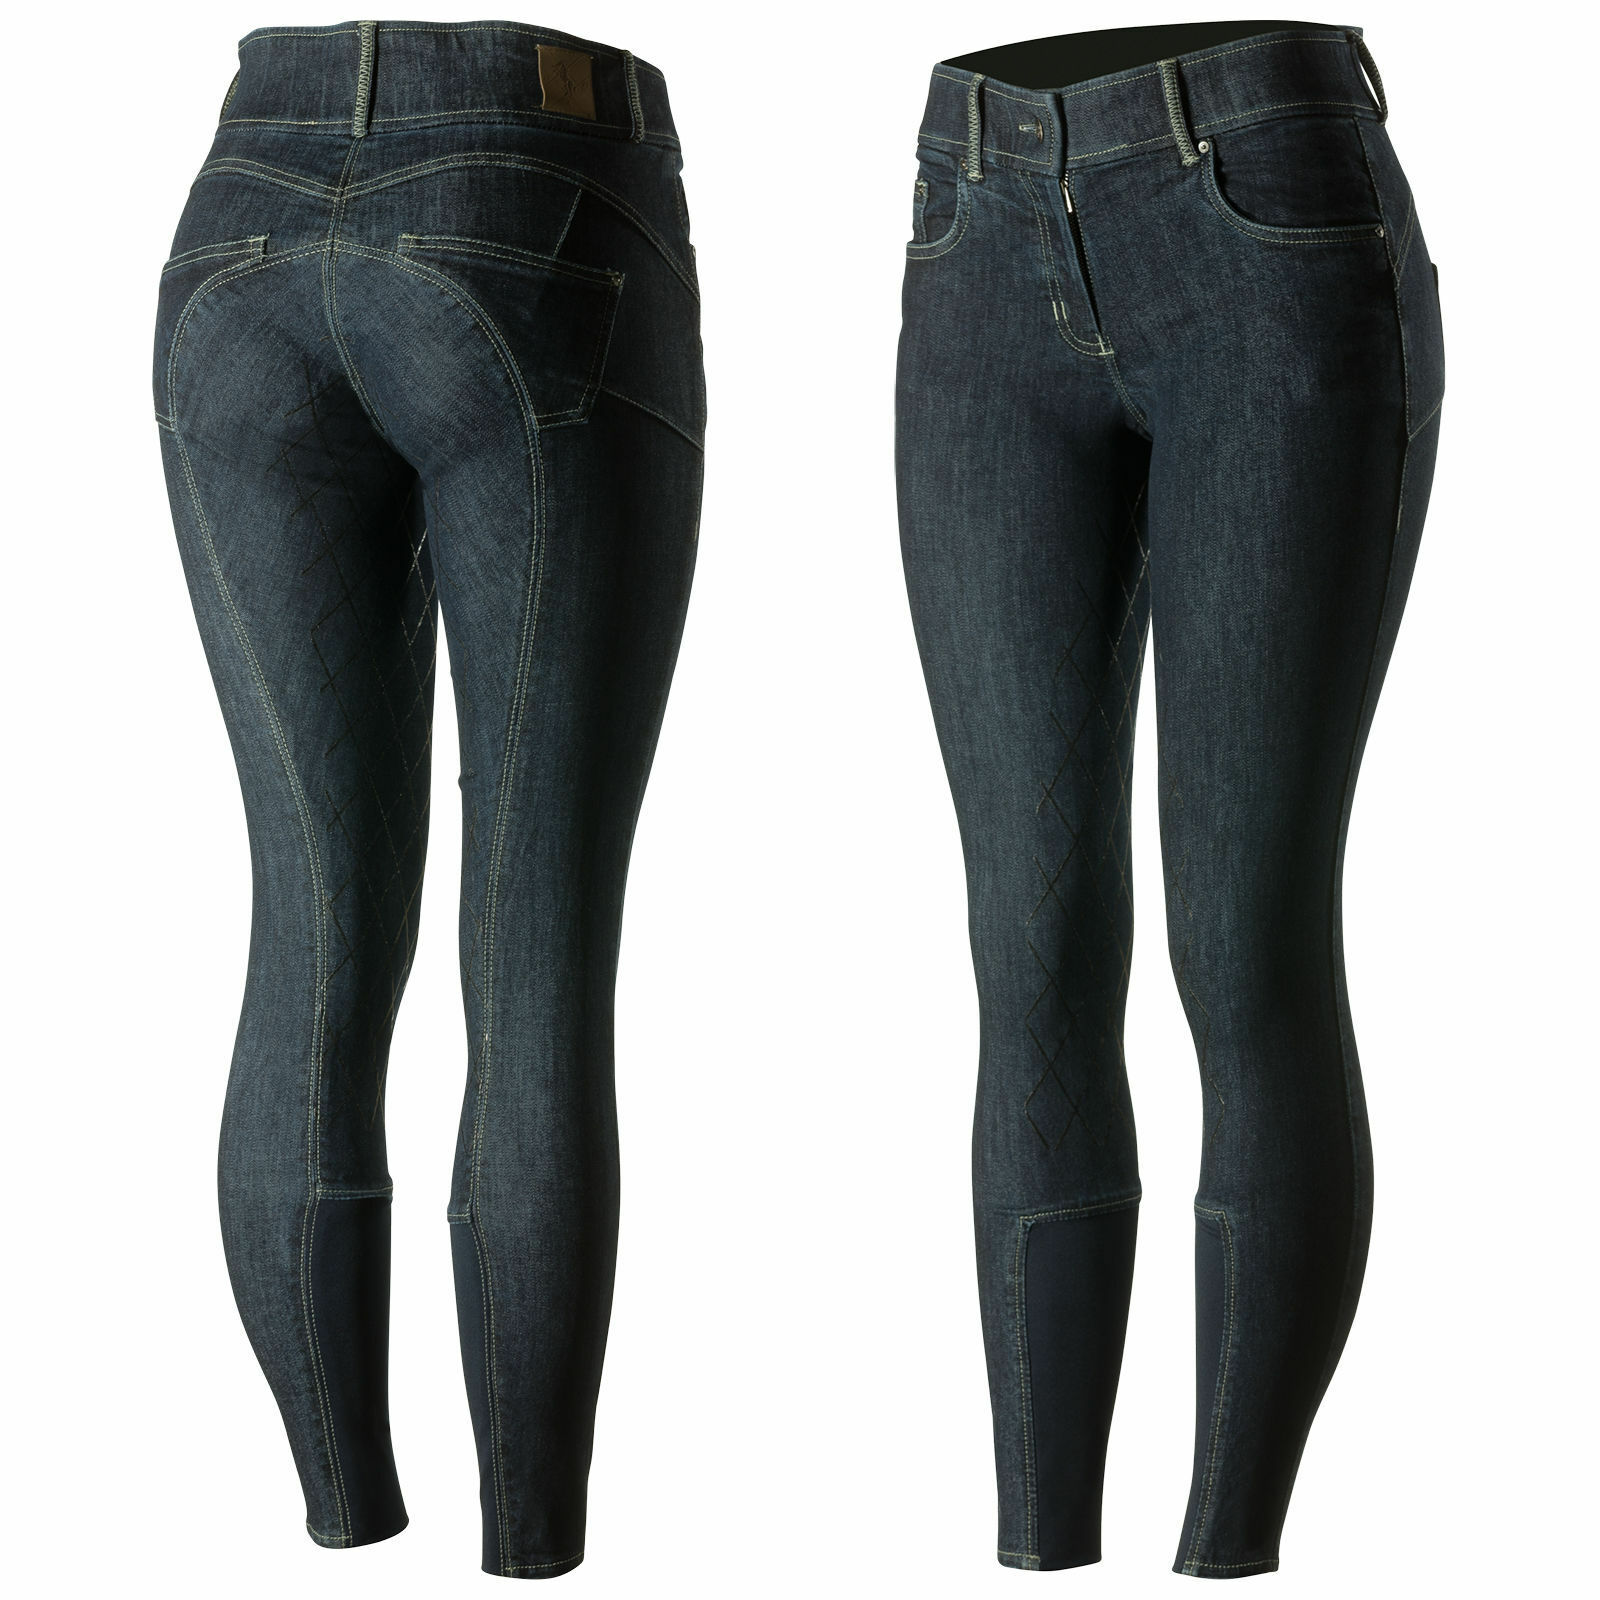 Horze Mujer Denim azul silicona de agarre asiento transpirable 4-way Stretch Calzones